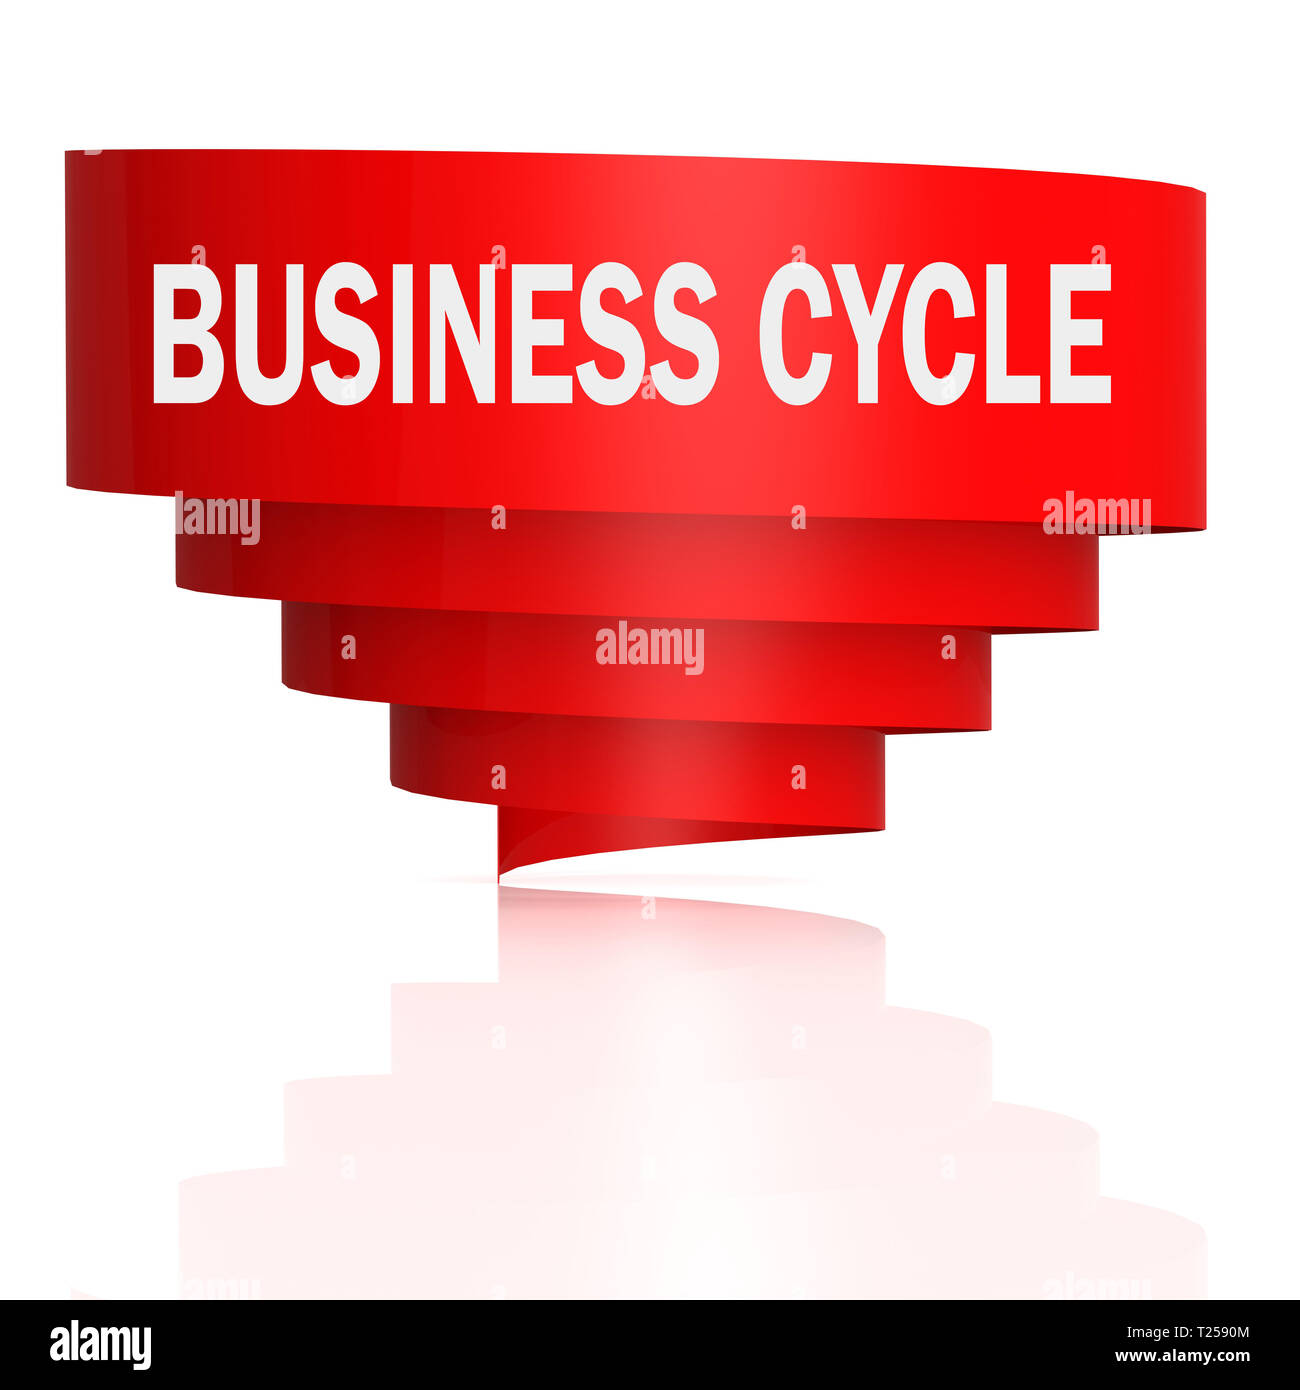 Business cycle word with curve banner, 3D rendering - Stock Image